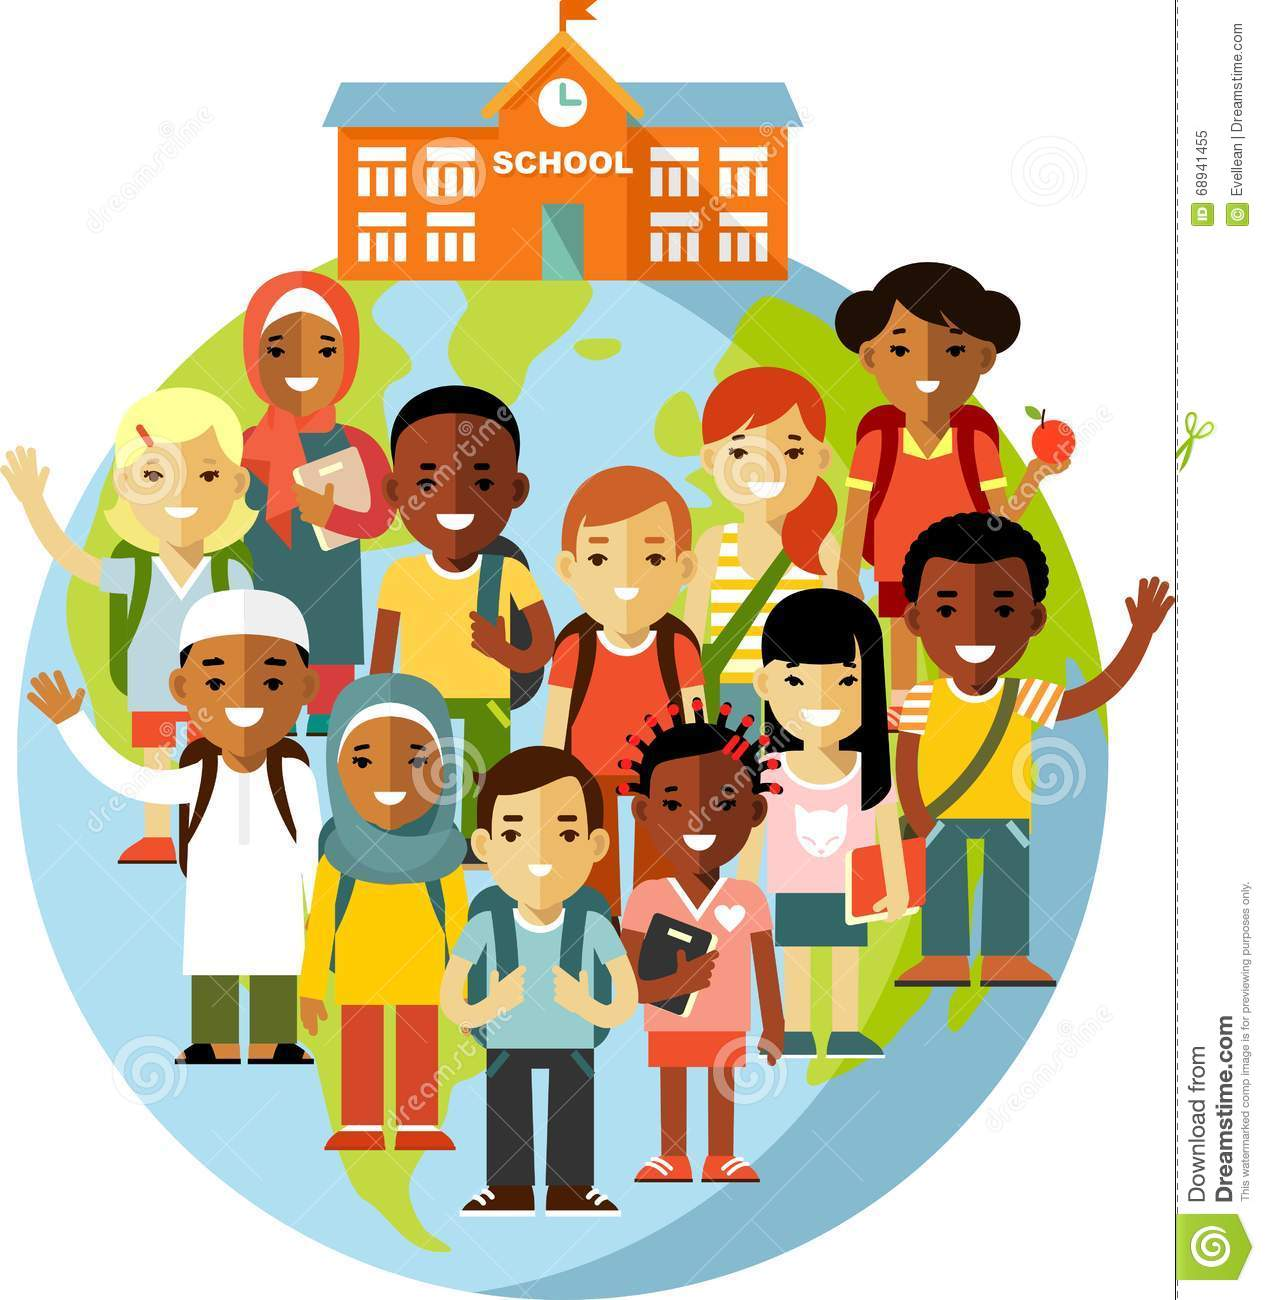 multiculturalism in school The components required in educating a multicultural education are content  integrations, prejudice reduction, empowering school culture and.